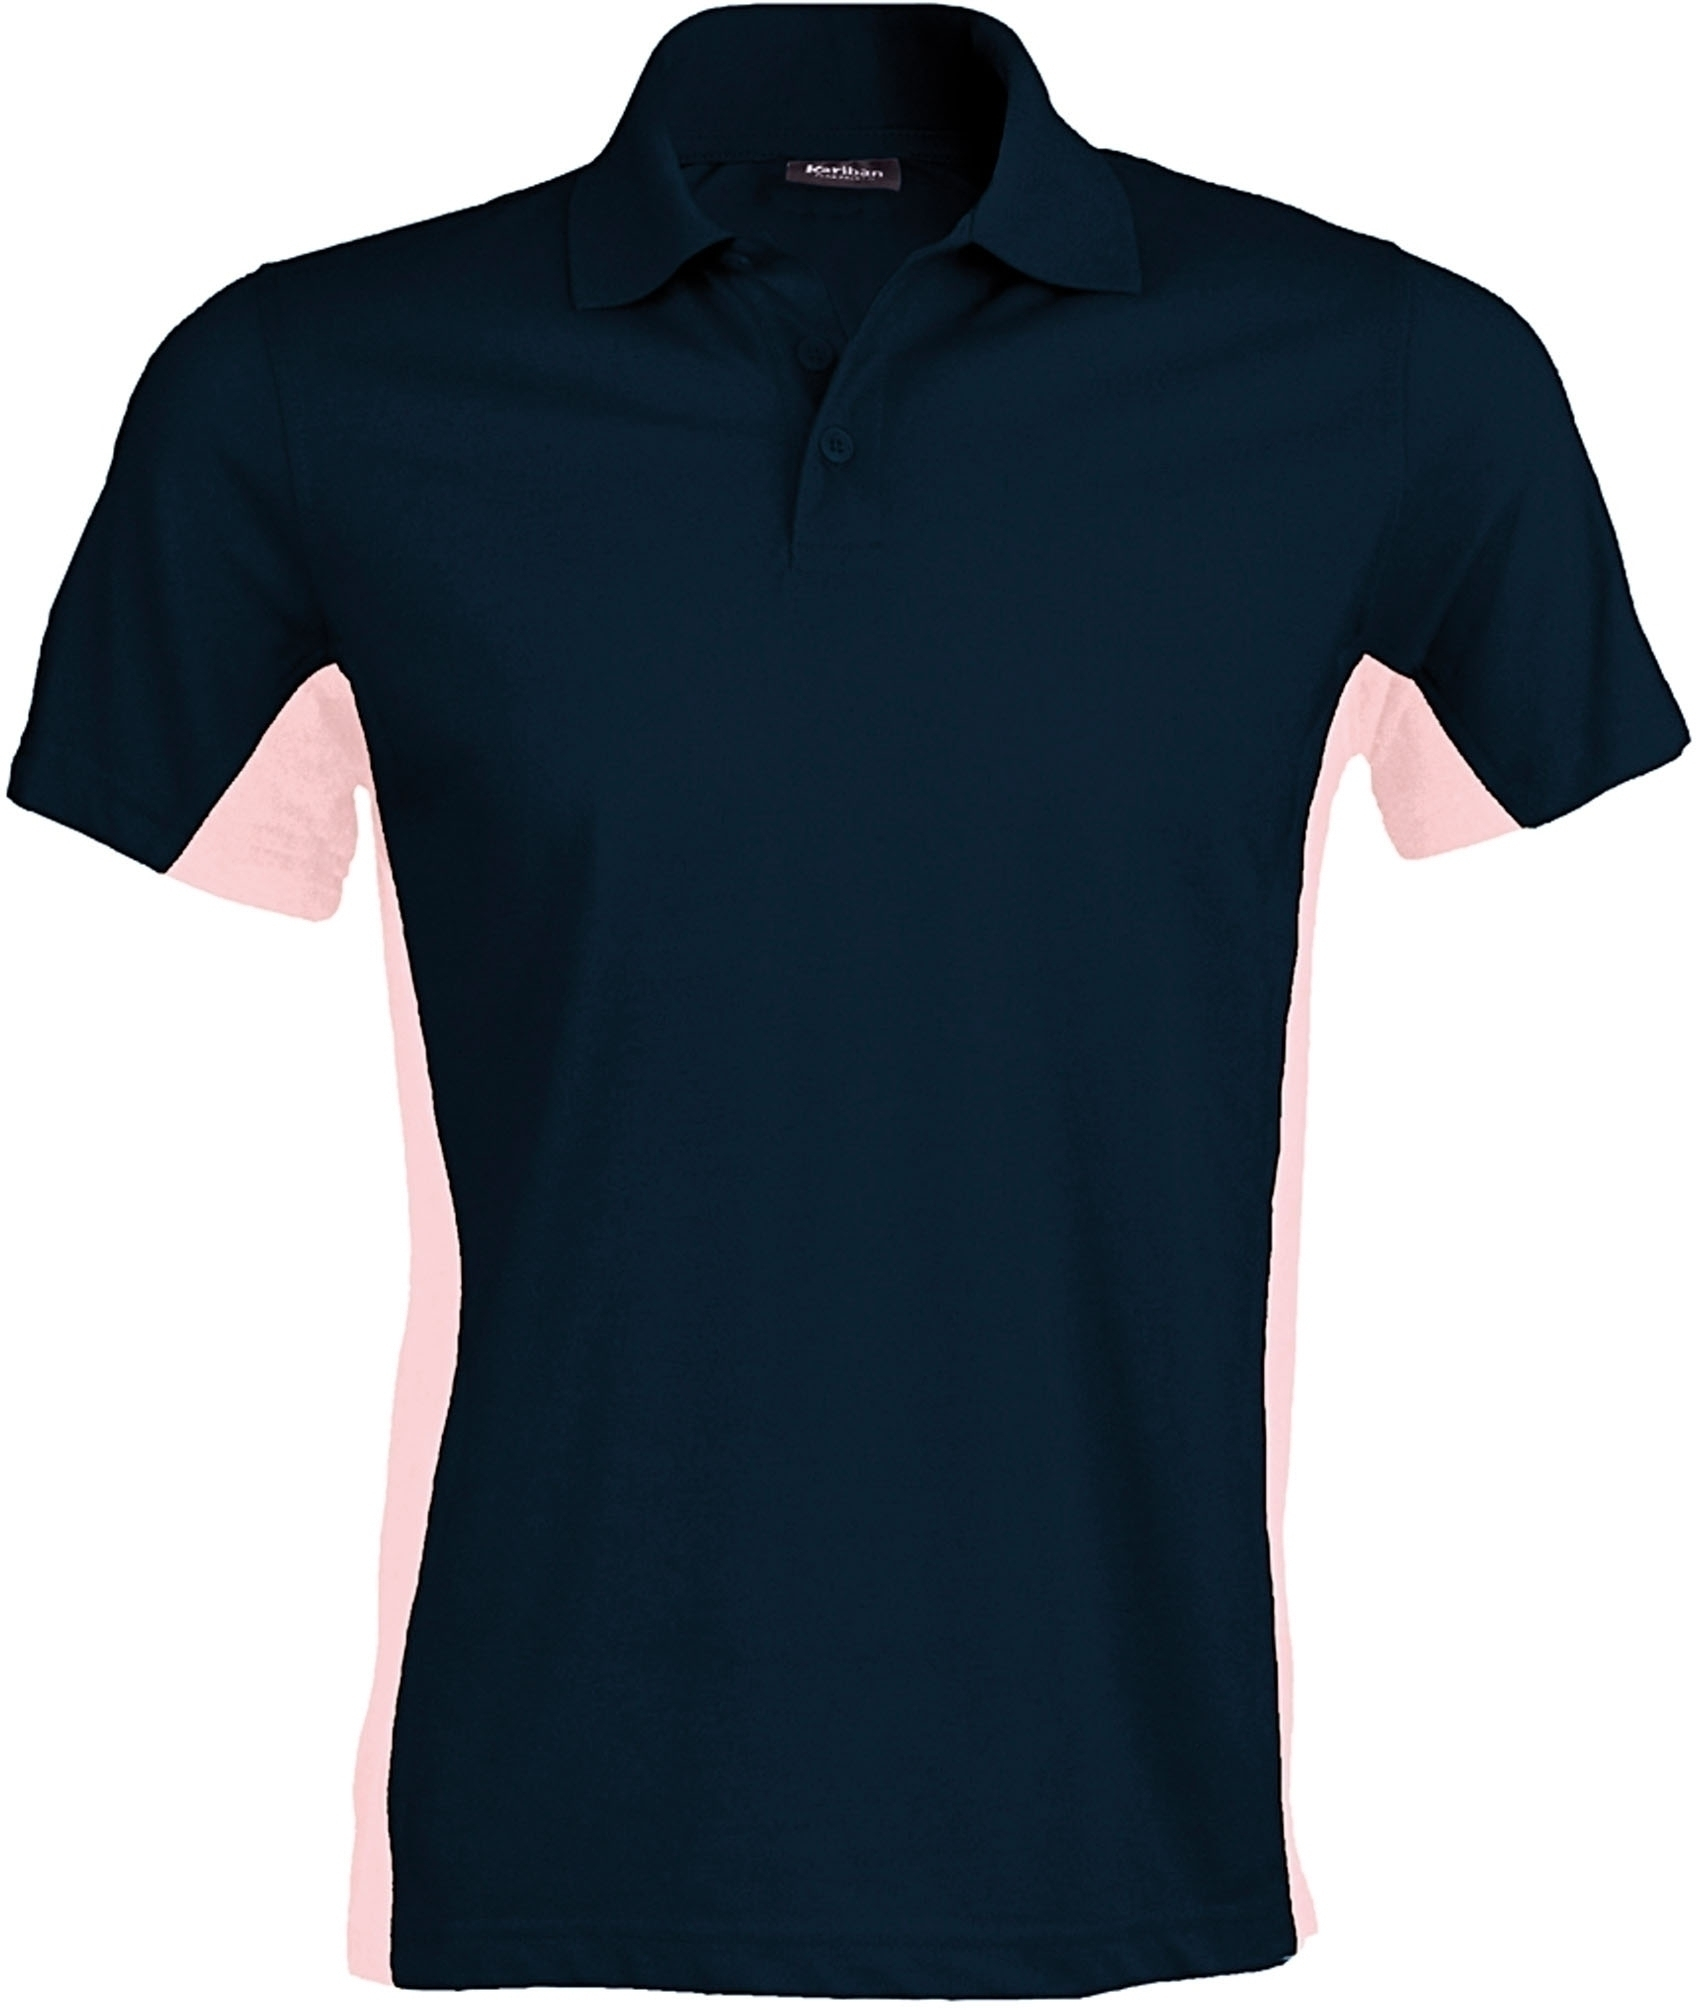 FLAG > POLO BICOLORE MANCHES COURTES Navy / Deep Pink Bleu